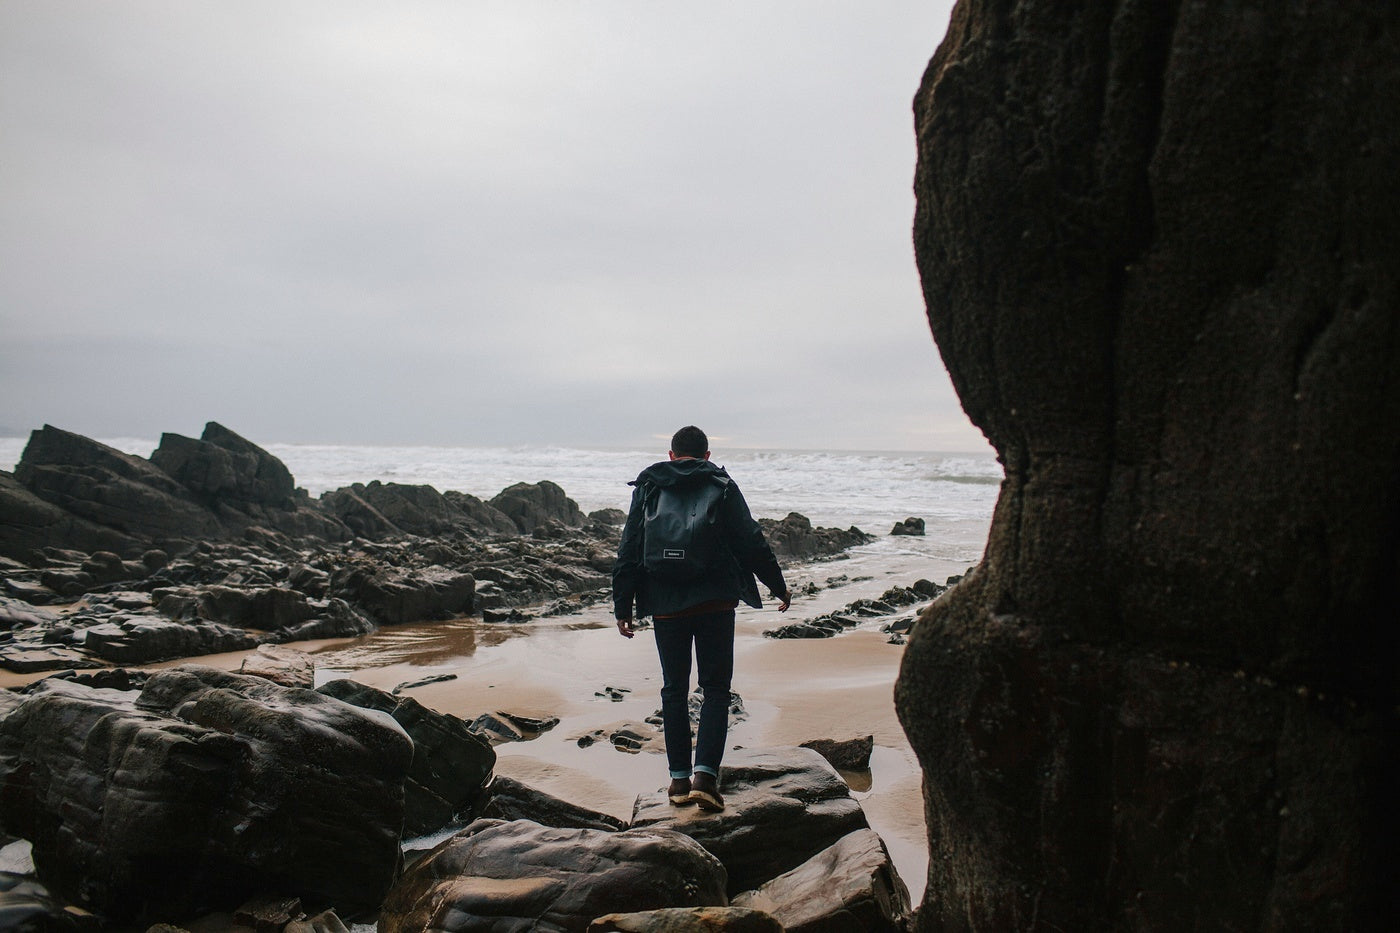 Man wearing the Finisterre stormbird jacket and drift backpack walks over a rocky shoreline